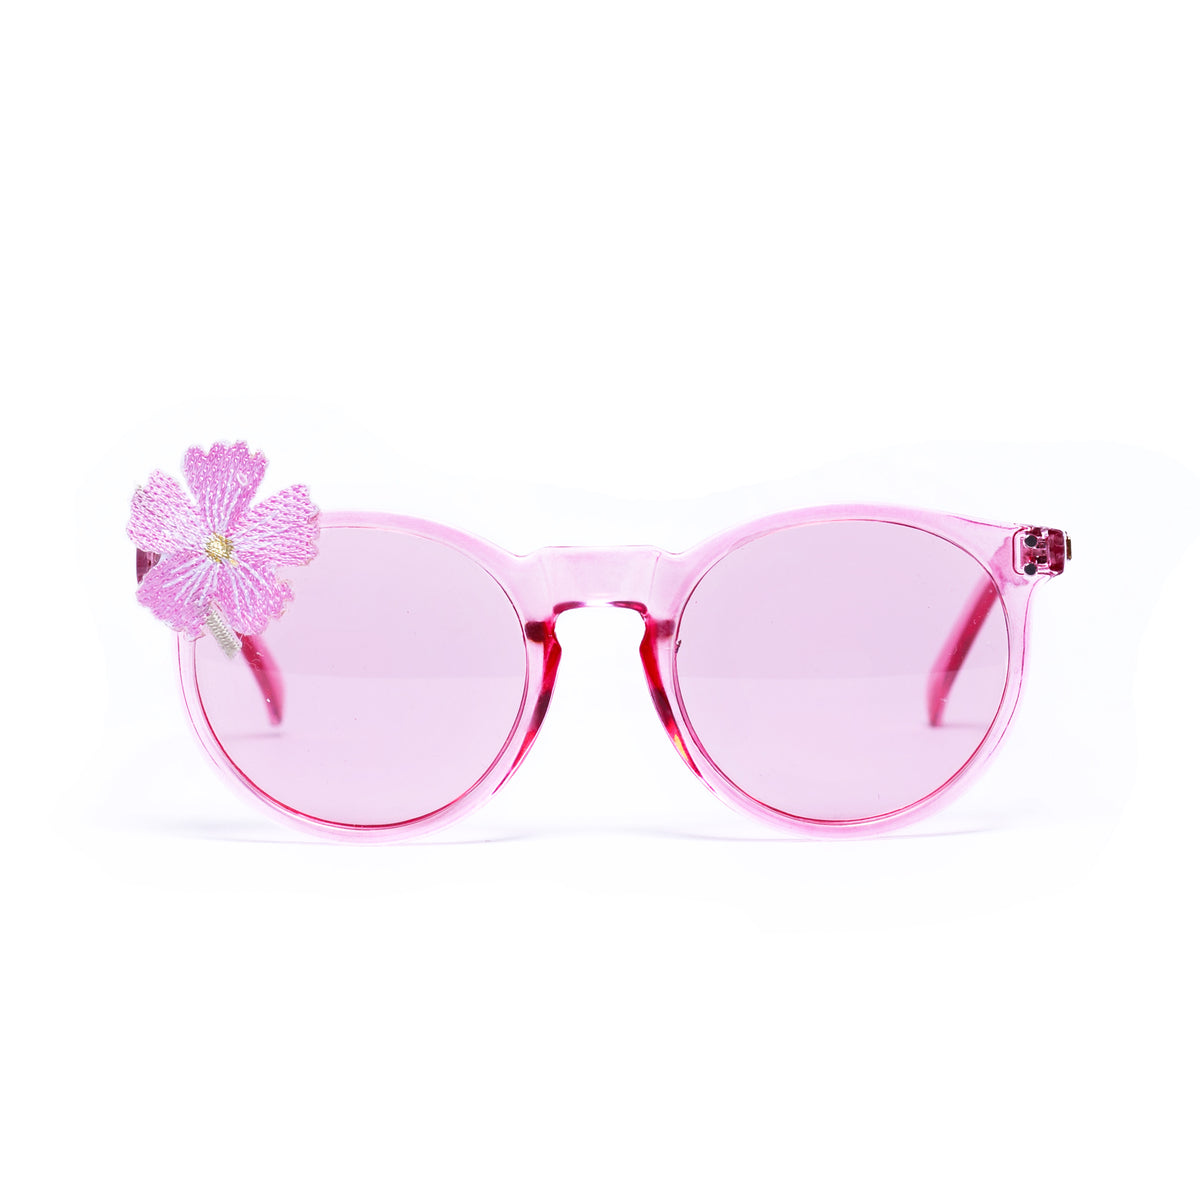 Princess Floral for kids  SUNNIES + OPTICS TNEMNRODAsamplesale, sunglasses collection- NRODA